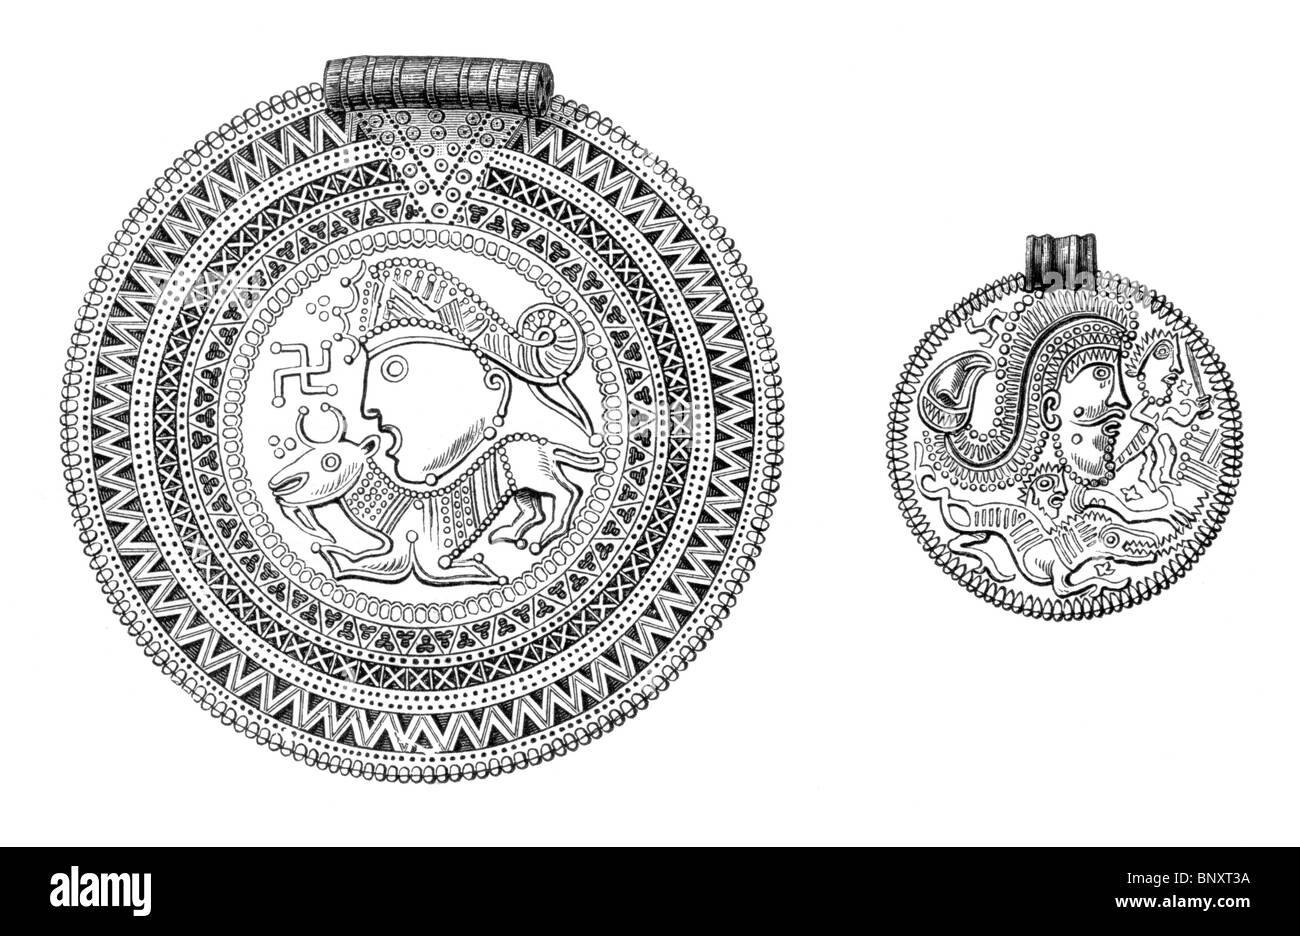 Black and White Illustration of Bracelets representing northern divinities; Viking or Danish Artifacts Stock Photo